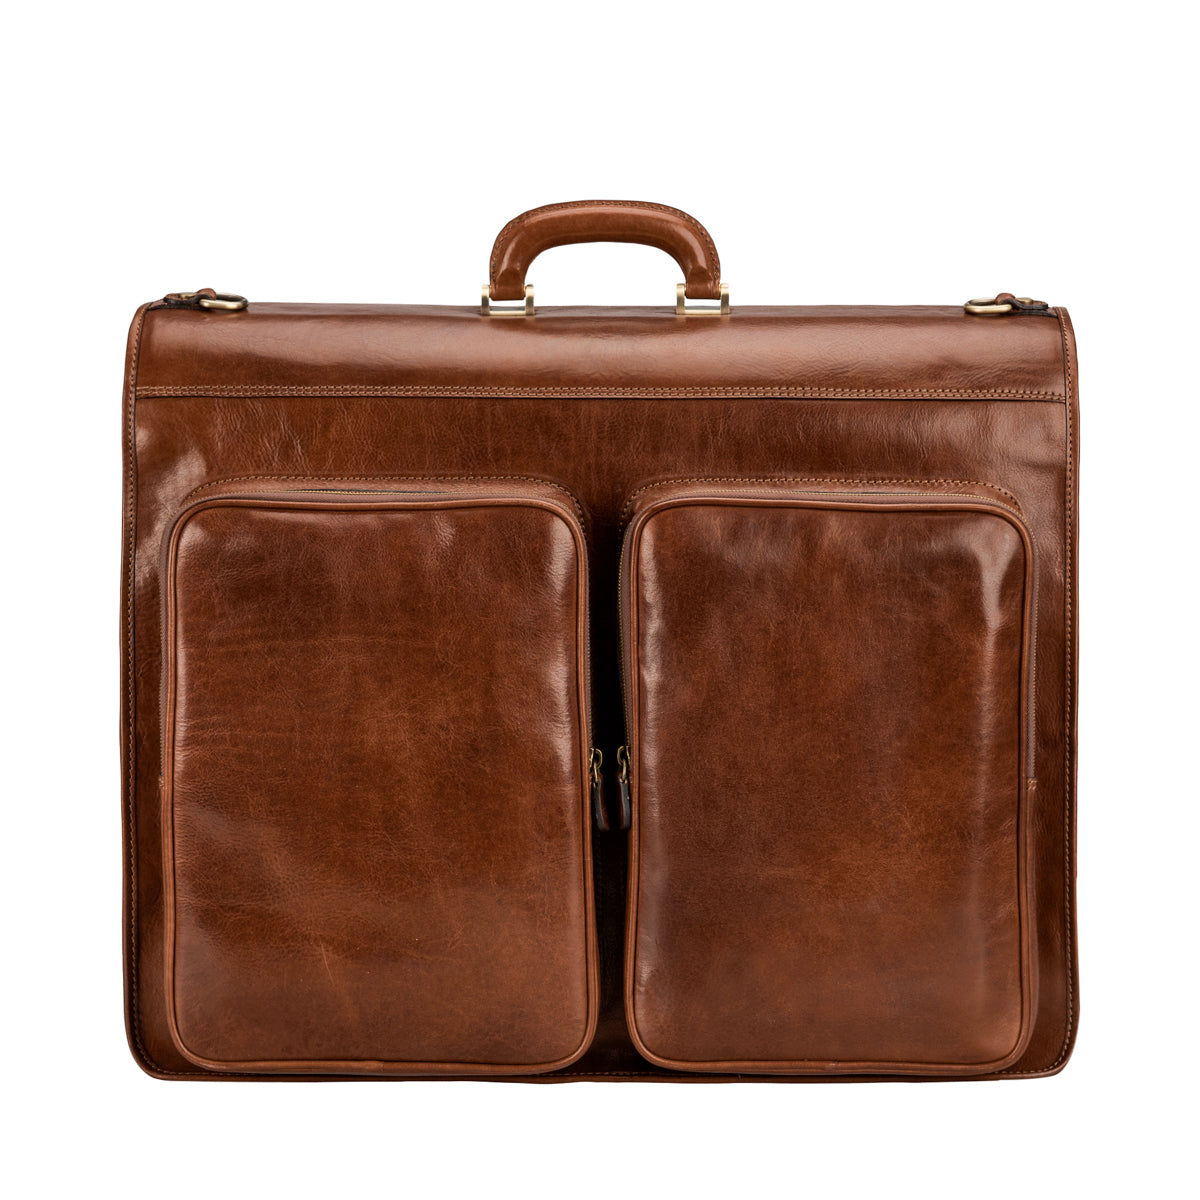 Image 3 of the 'Rovello' Chestnut Veg-Tanned Leather Suit Carrier